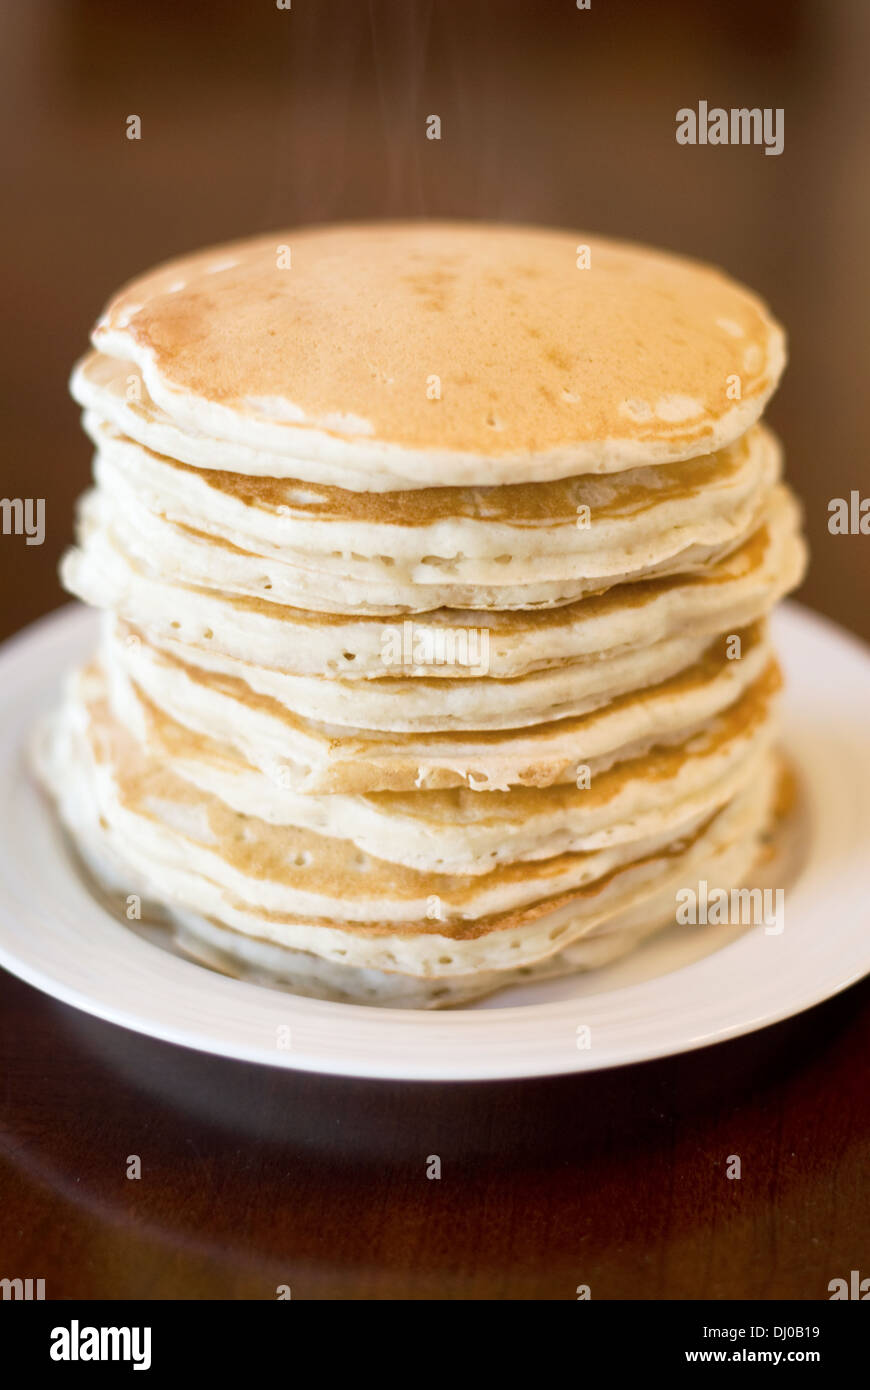 A stack of 10 fresh, hot buttermilk pancakes, with the steam still rising from the top. - Stock Image